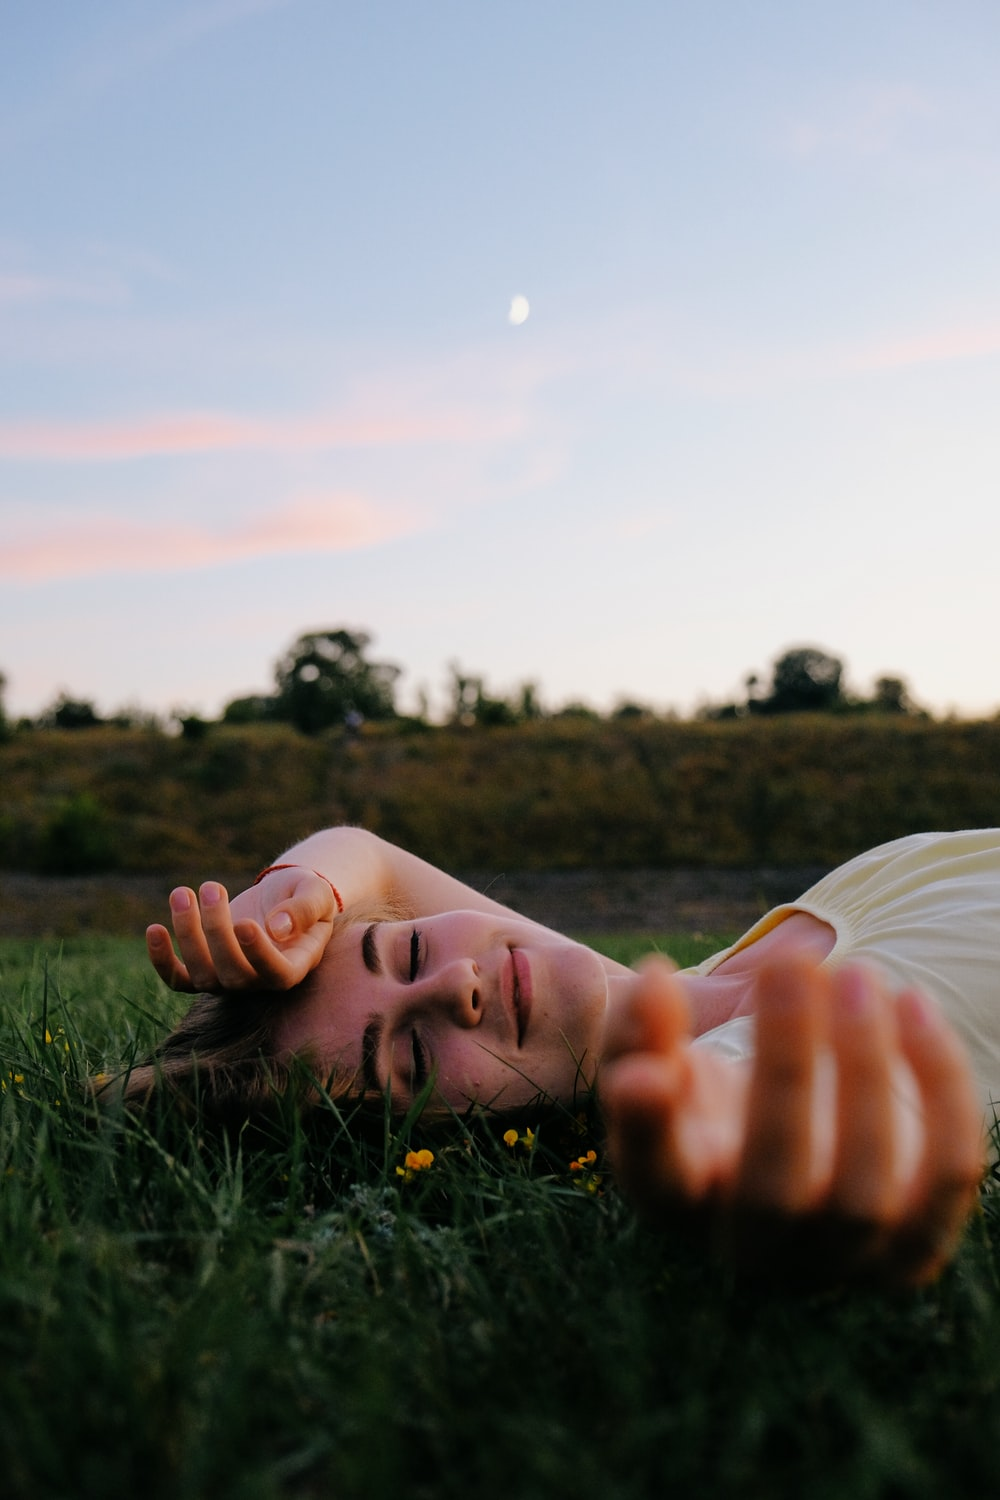 woman in white shirt lying on green grass field during daytime